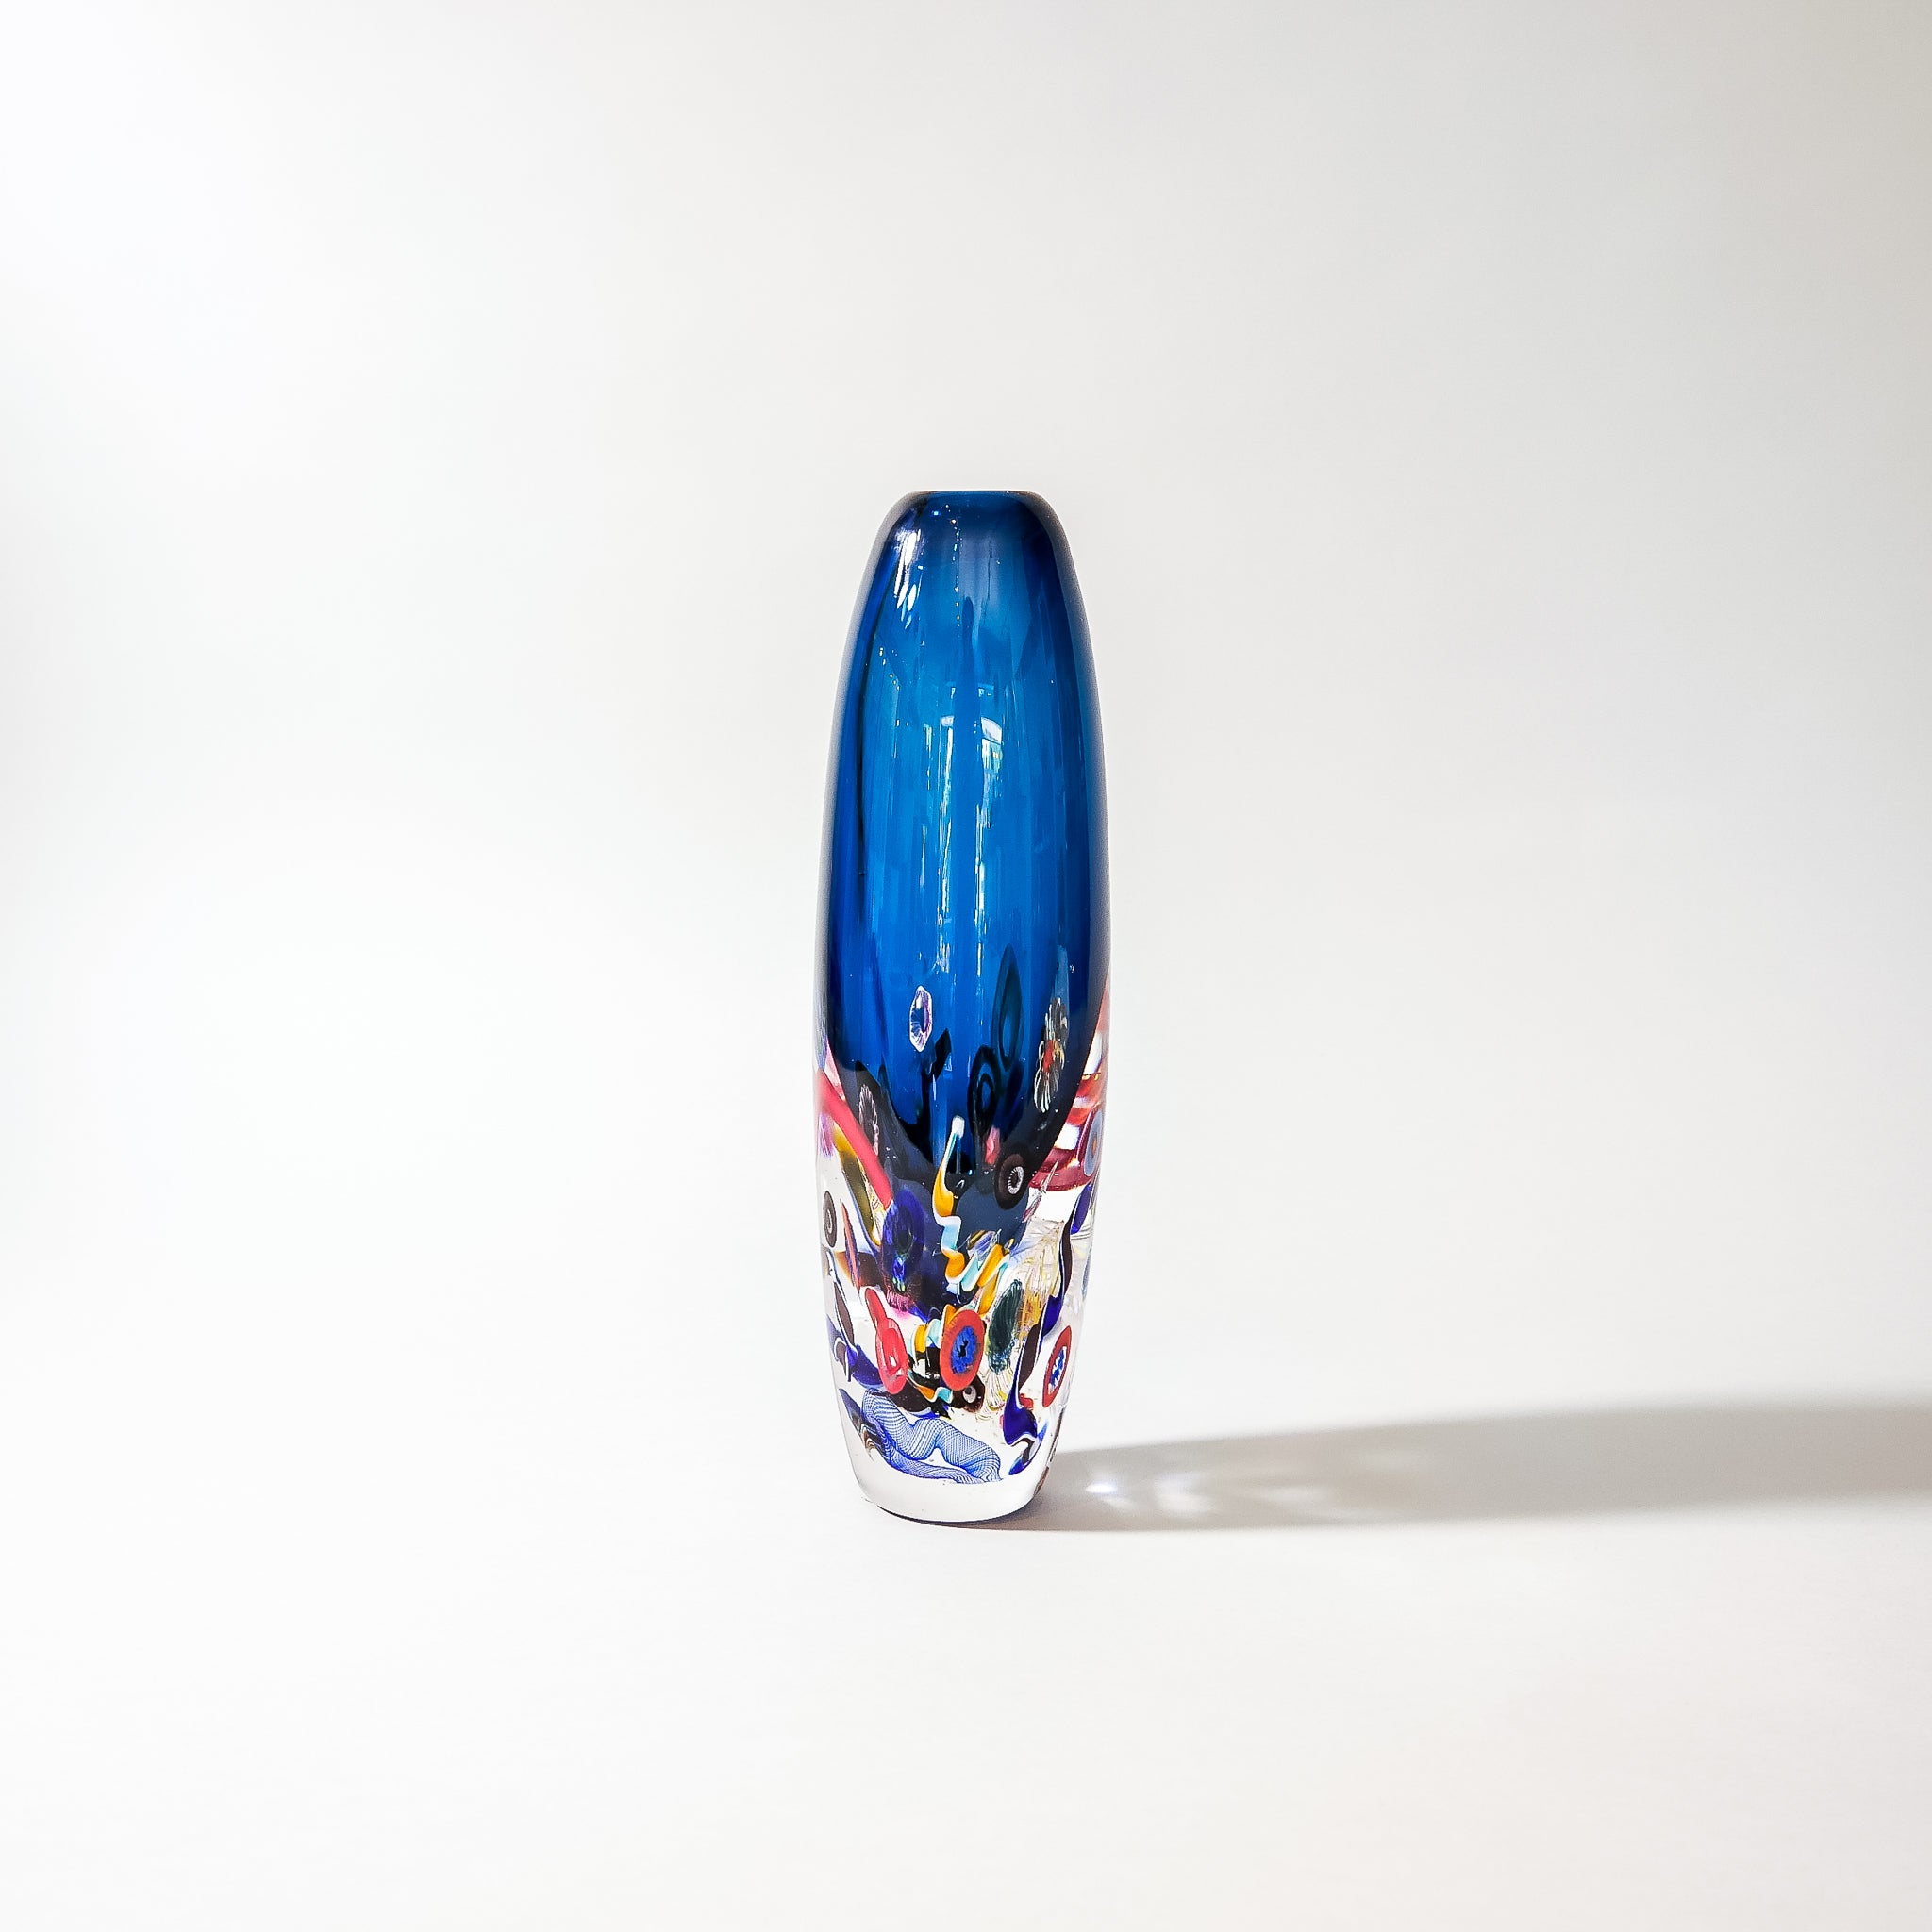 "Paperweight Vase: ""Inclusion Series"" . Signed by Leonard Whitfield, artist."